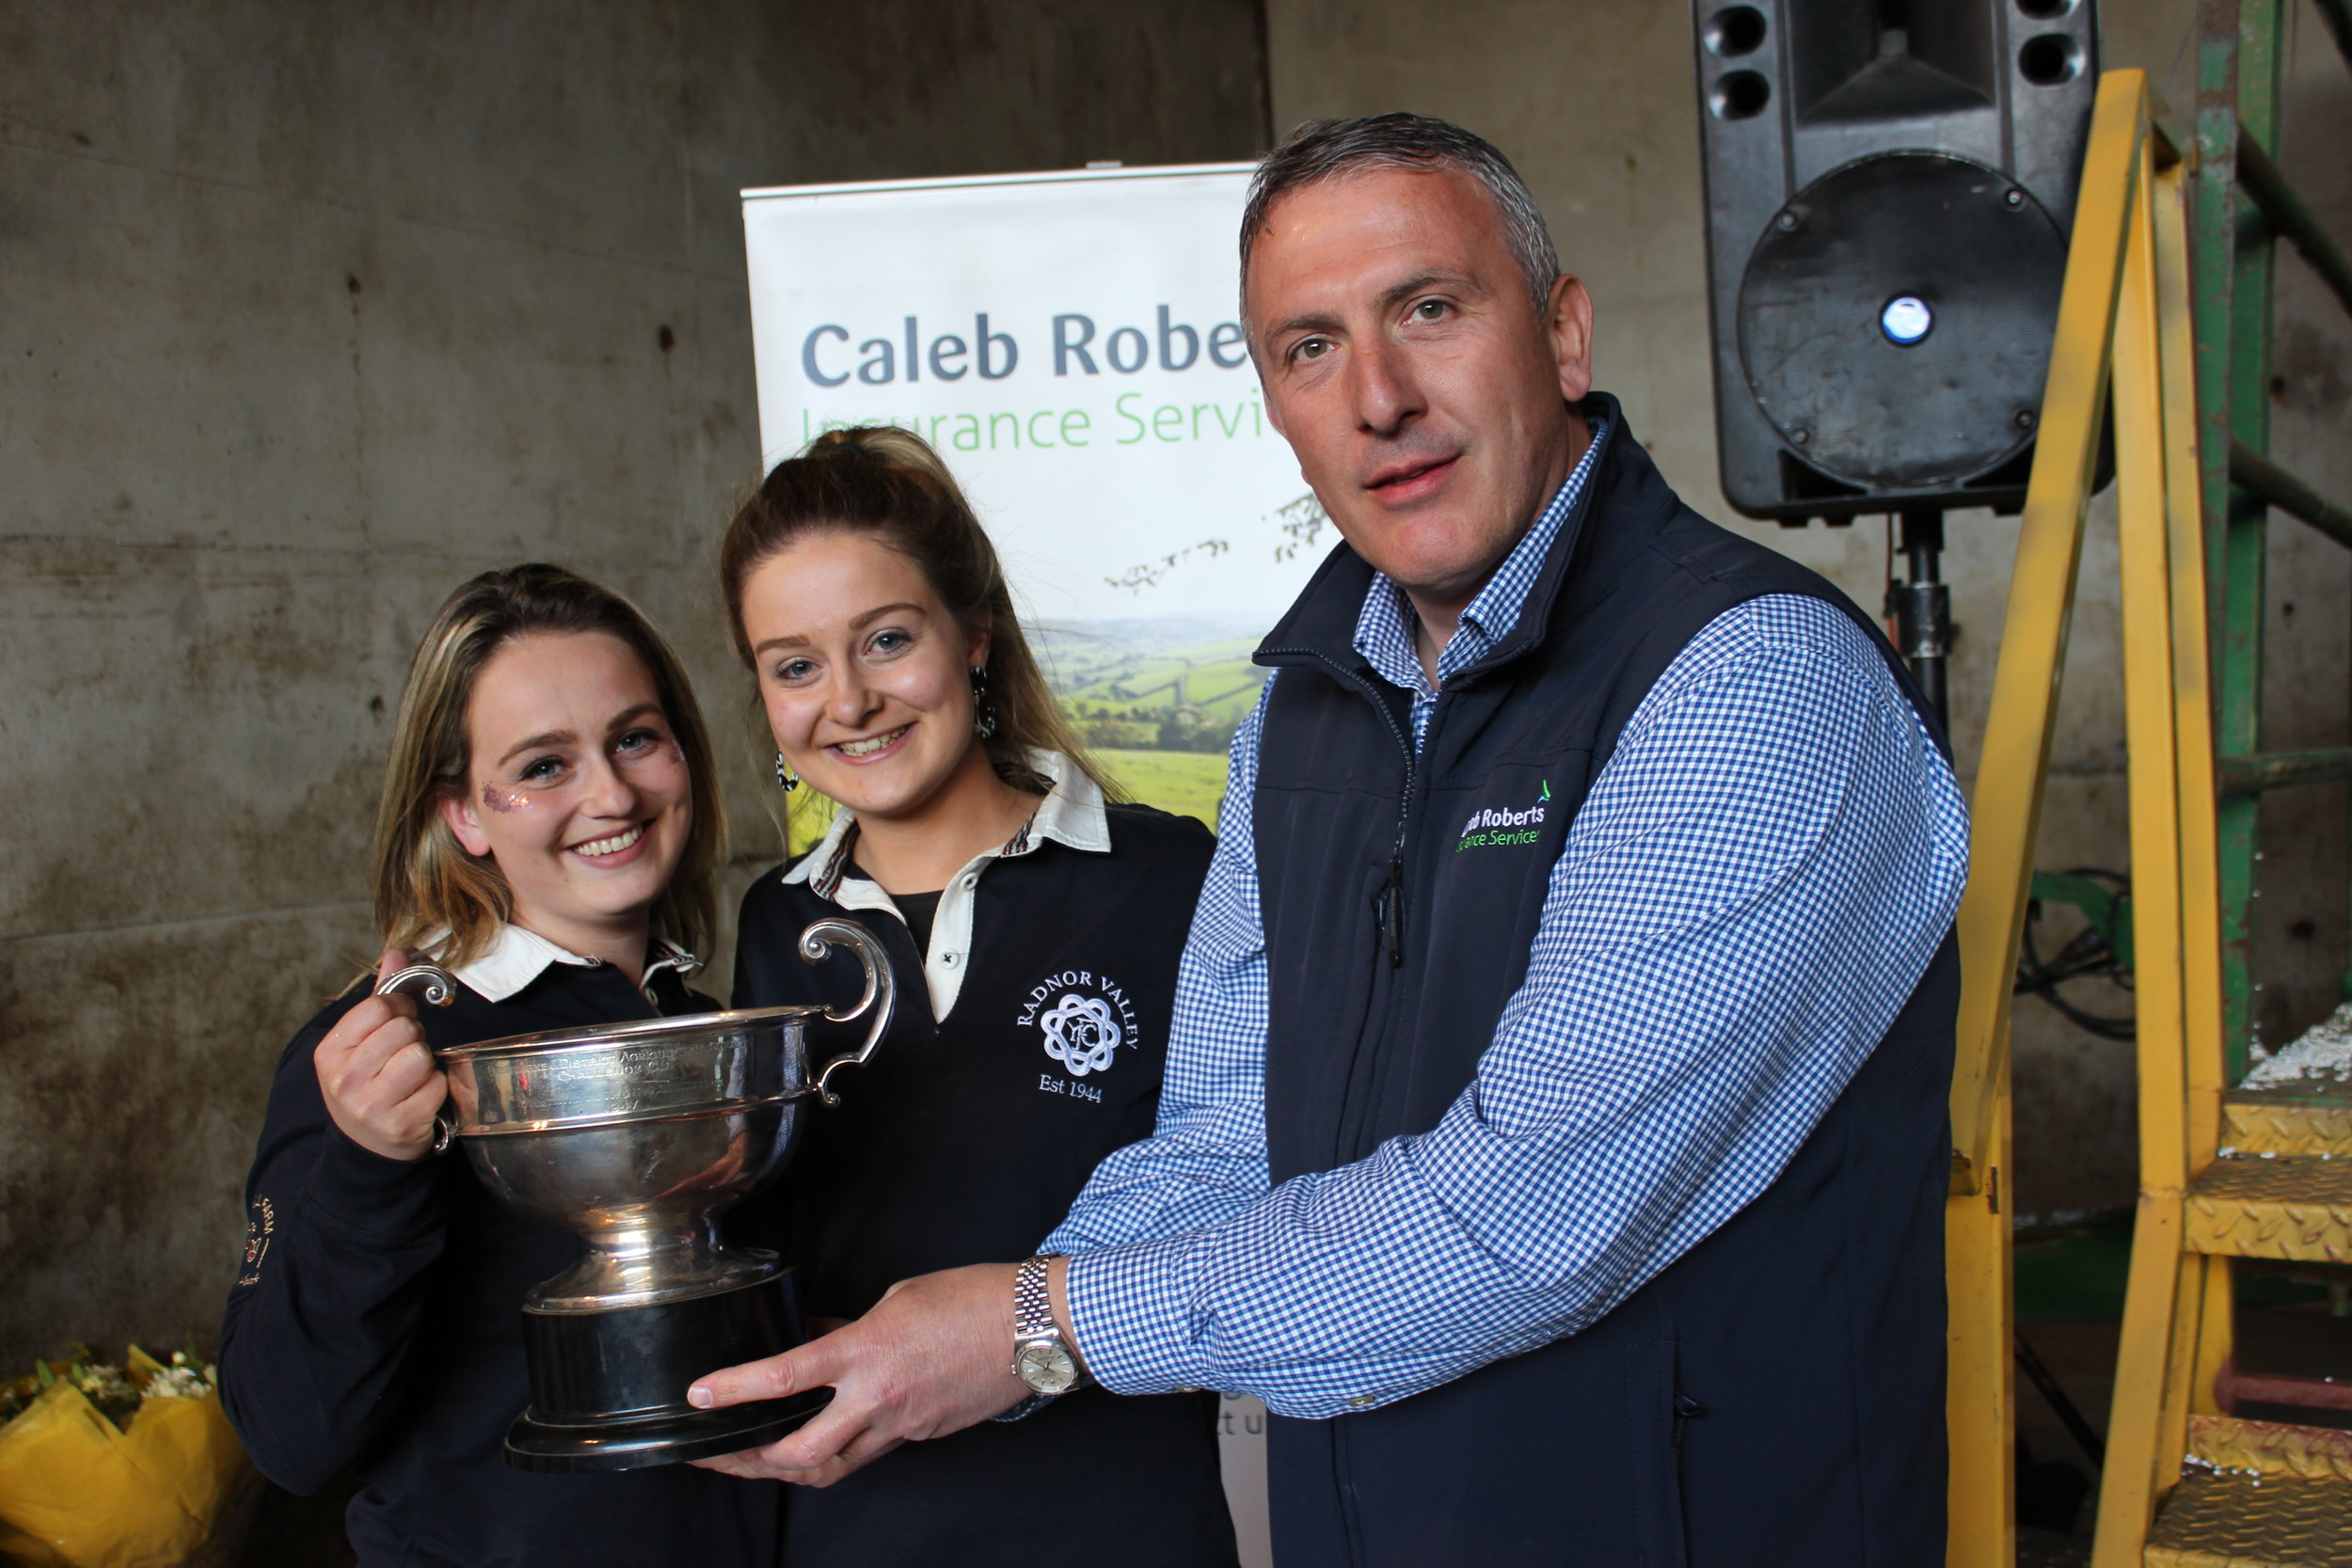 Lauren Morris & Sally Morris, Radnor Valley YFC - Presteigne Agricultural Cup for second place being presented by Hugh Campbell, Caleb Roberts.